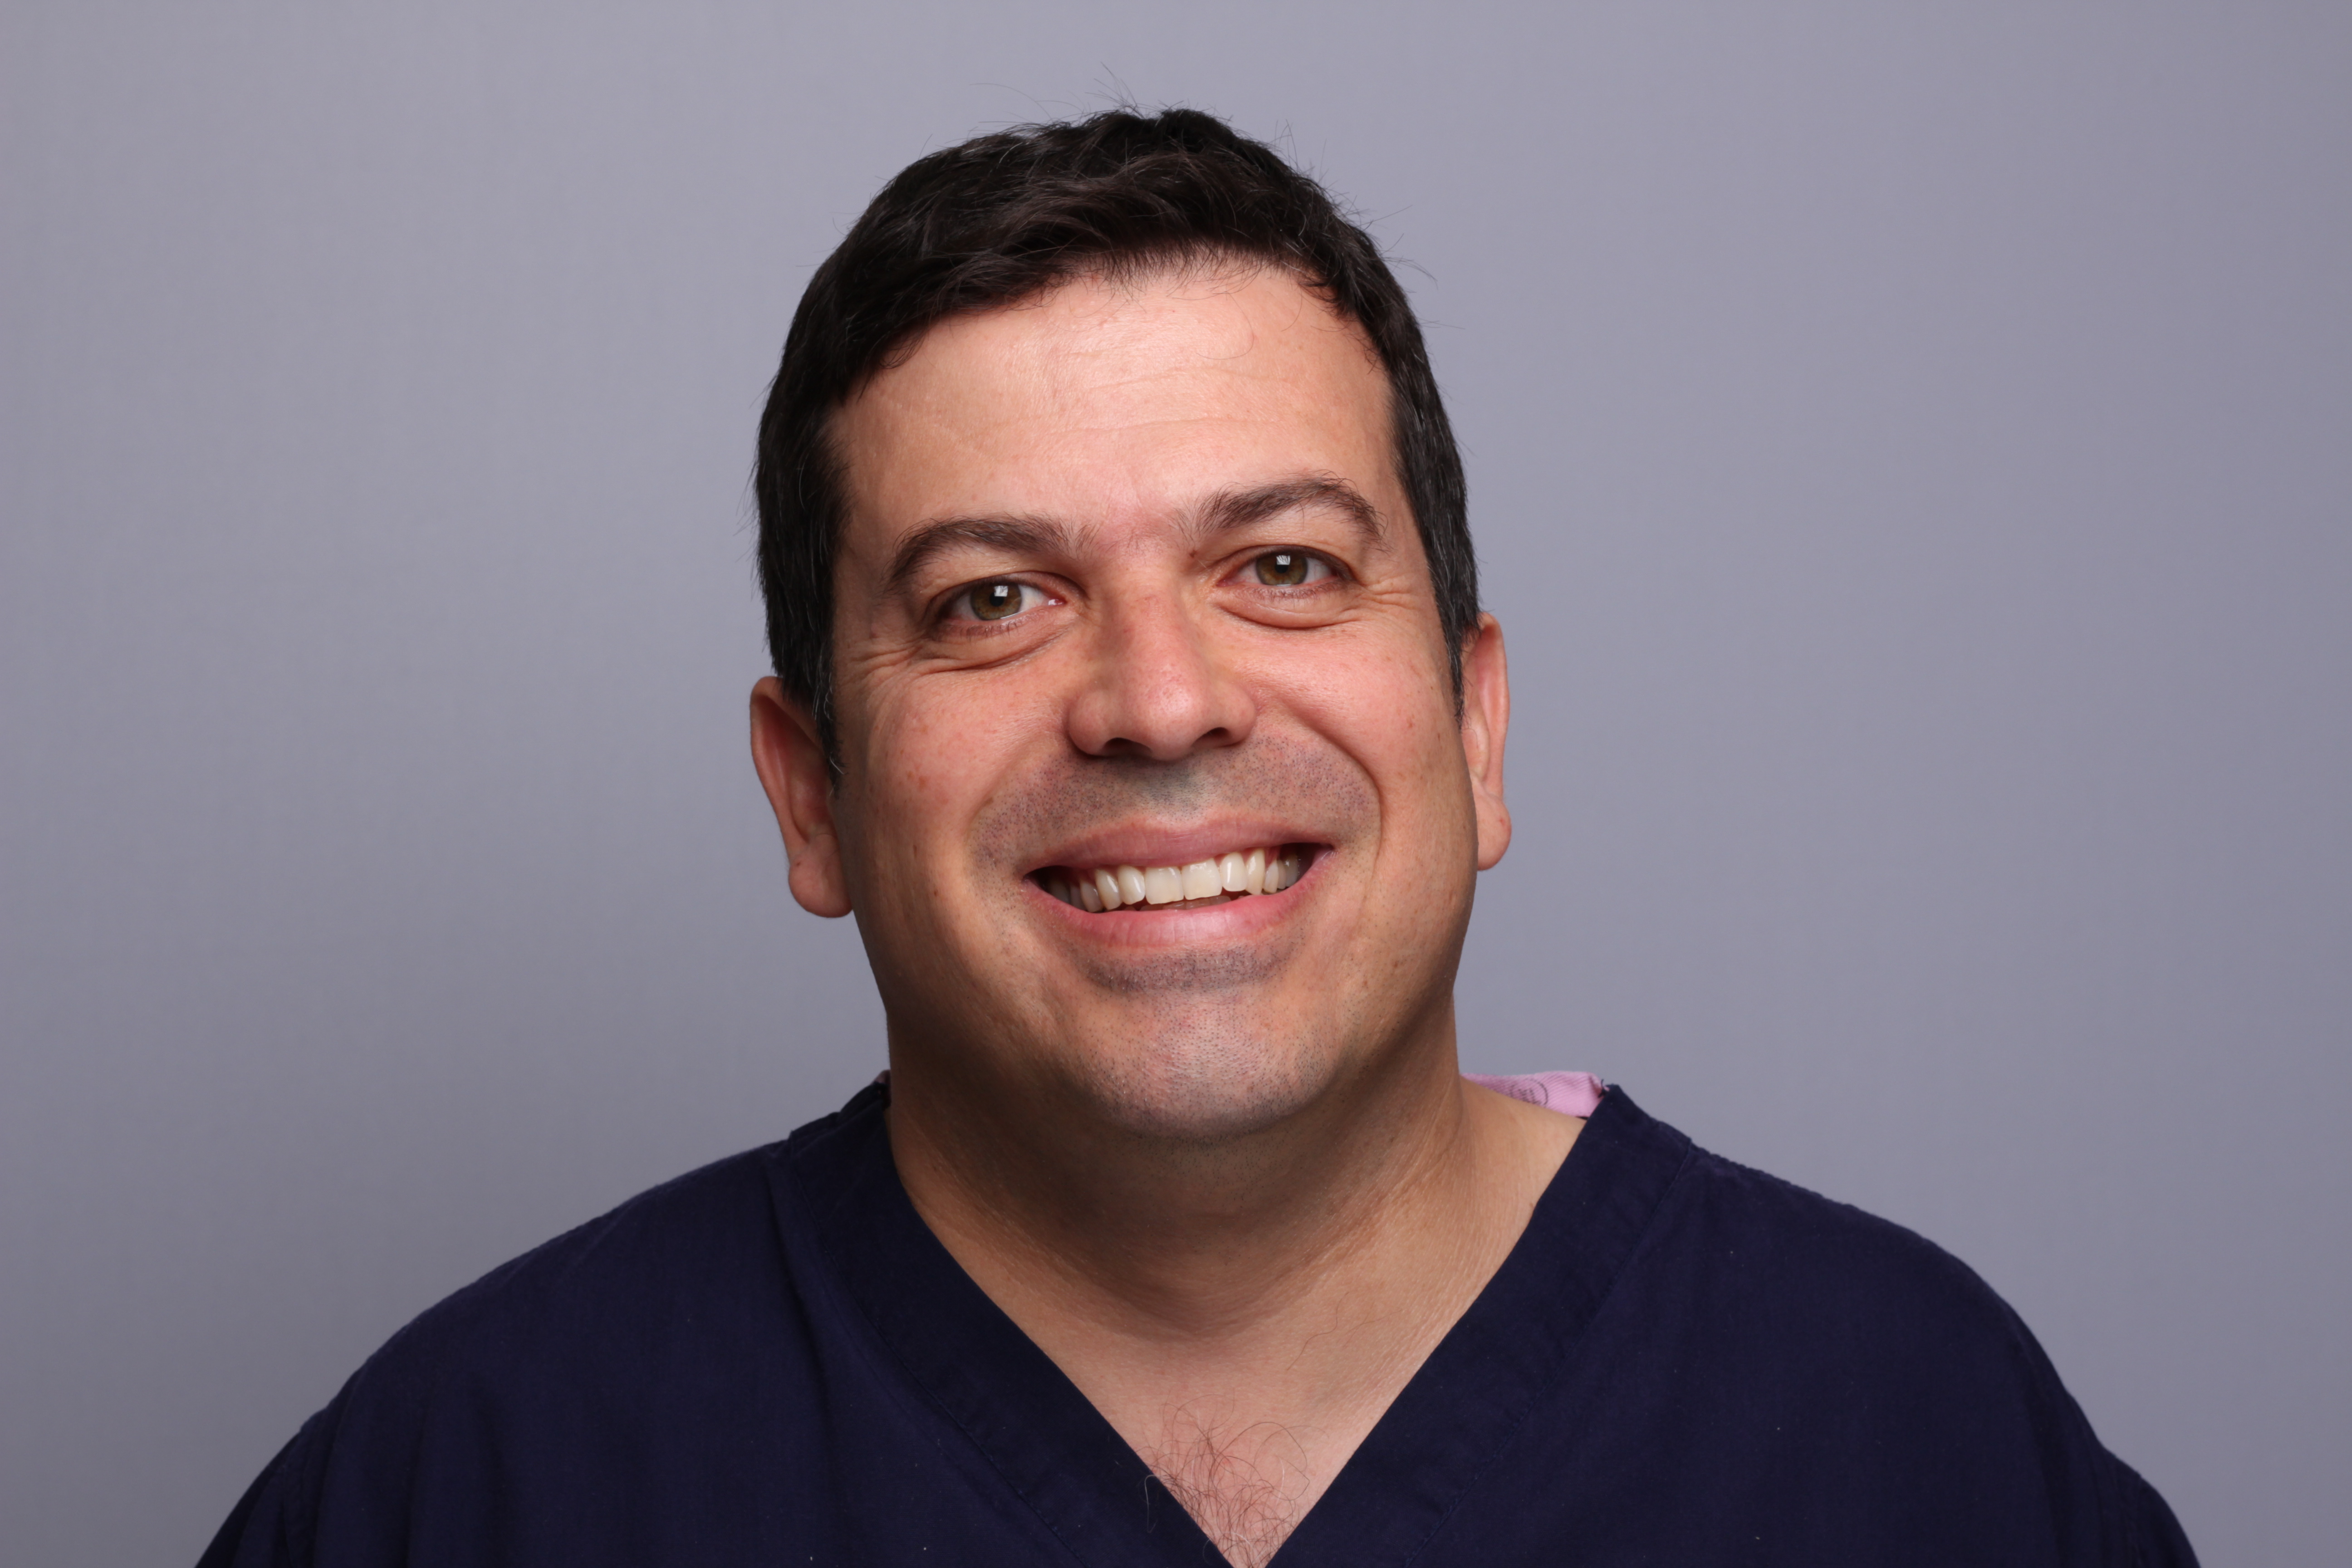 Dr Bruno Silva, the Brighton implant clinic